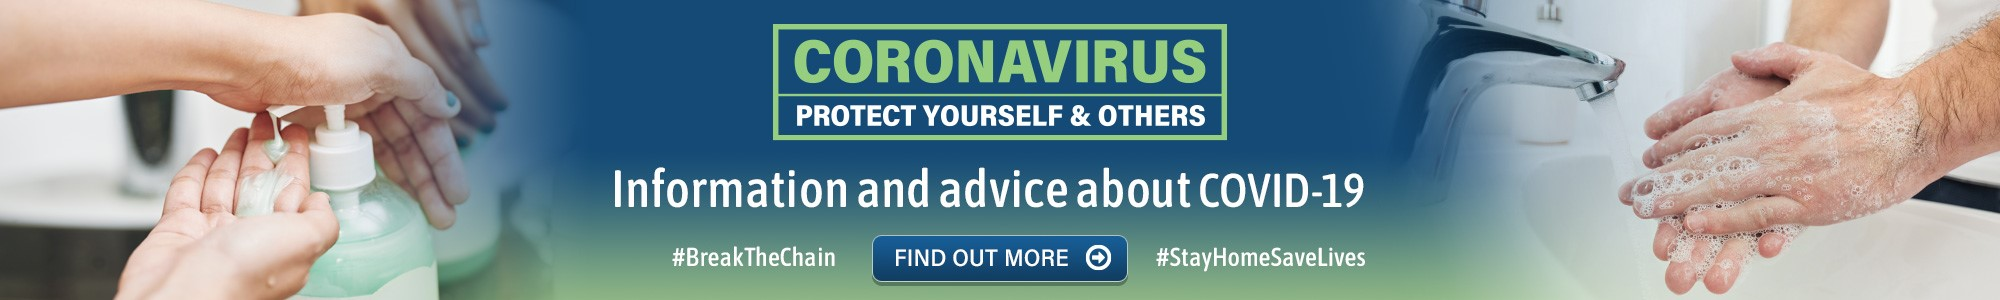 Coronavirus. Protect yourself and others. Information and advice about COVID-19